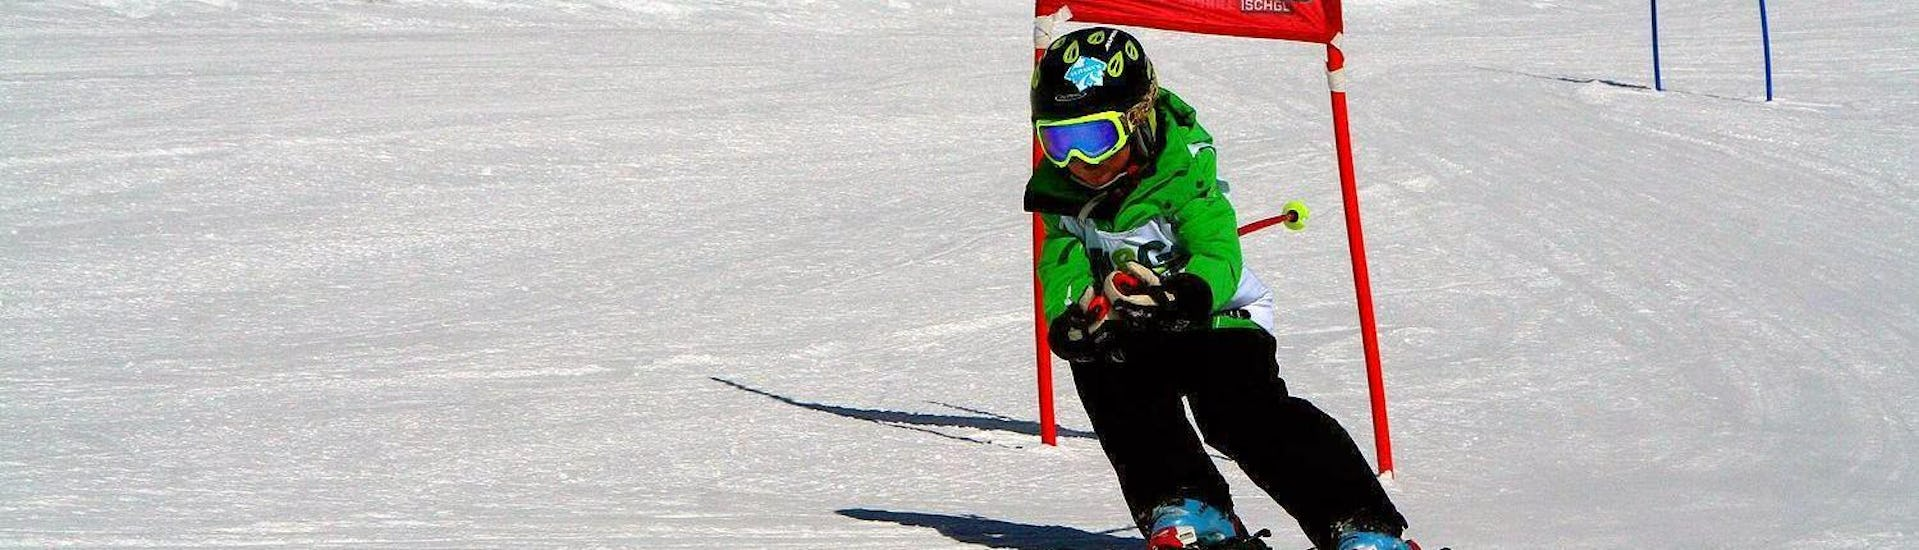 A young child is speeding down a race track during one of their Kids Ski Lessons (6-15 years) - Advanced in the ski resort of Ischgl.